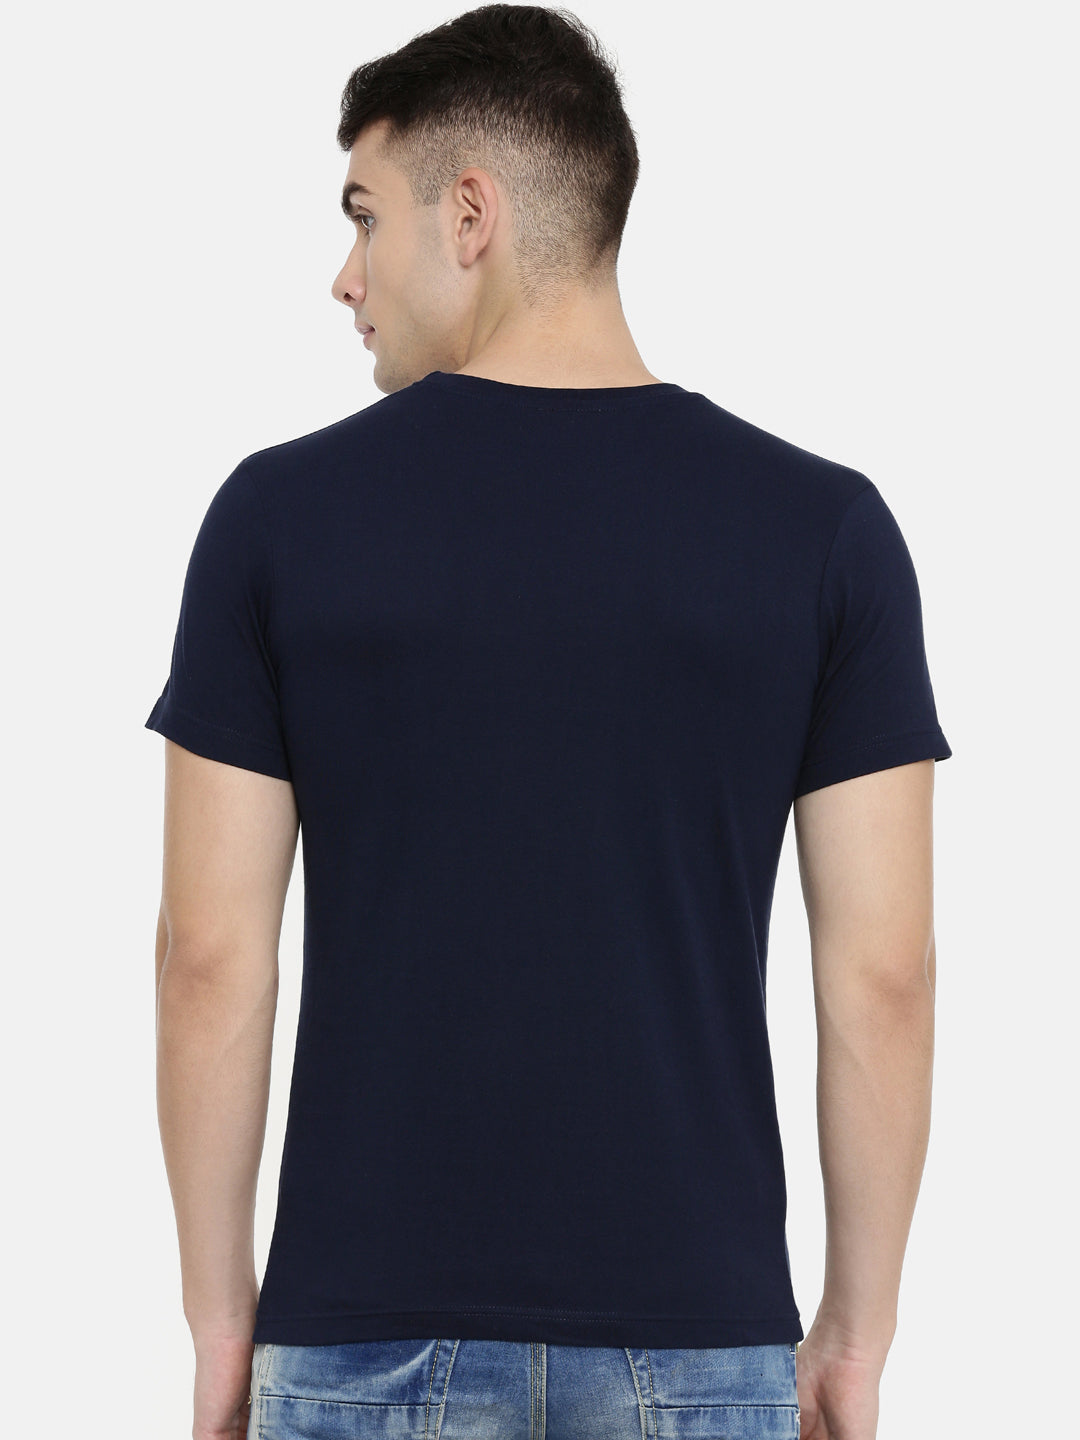 Navy Blue Round Neck Half Sleeve T-shirt Baromin